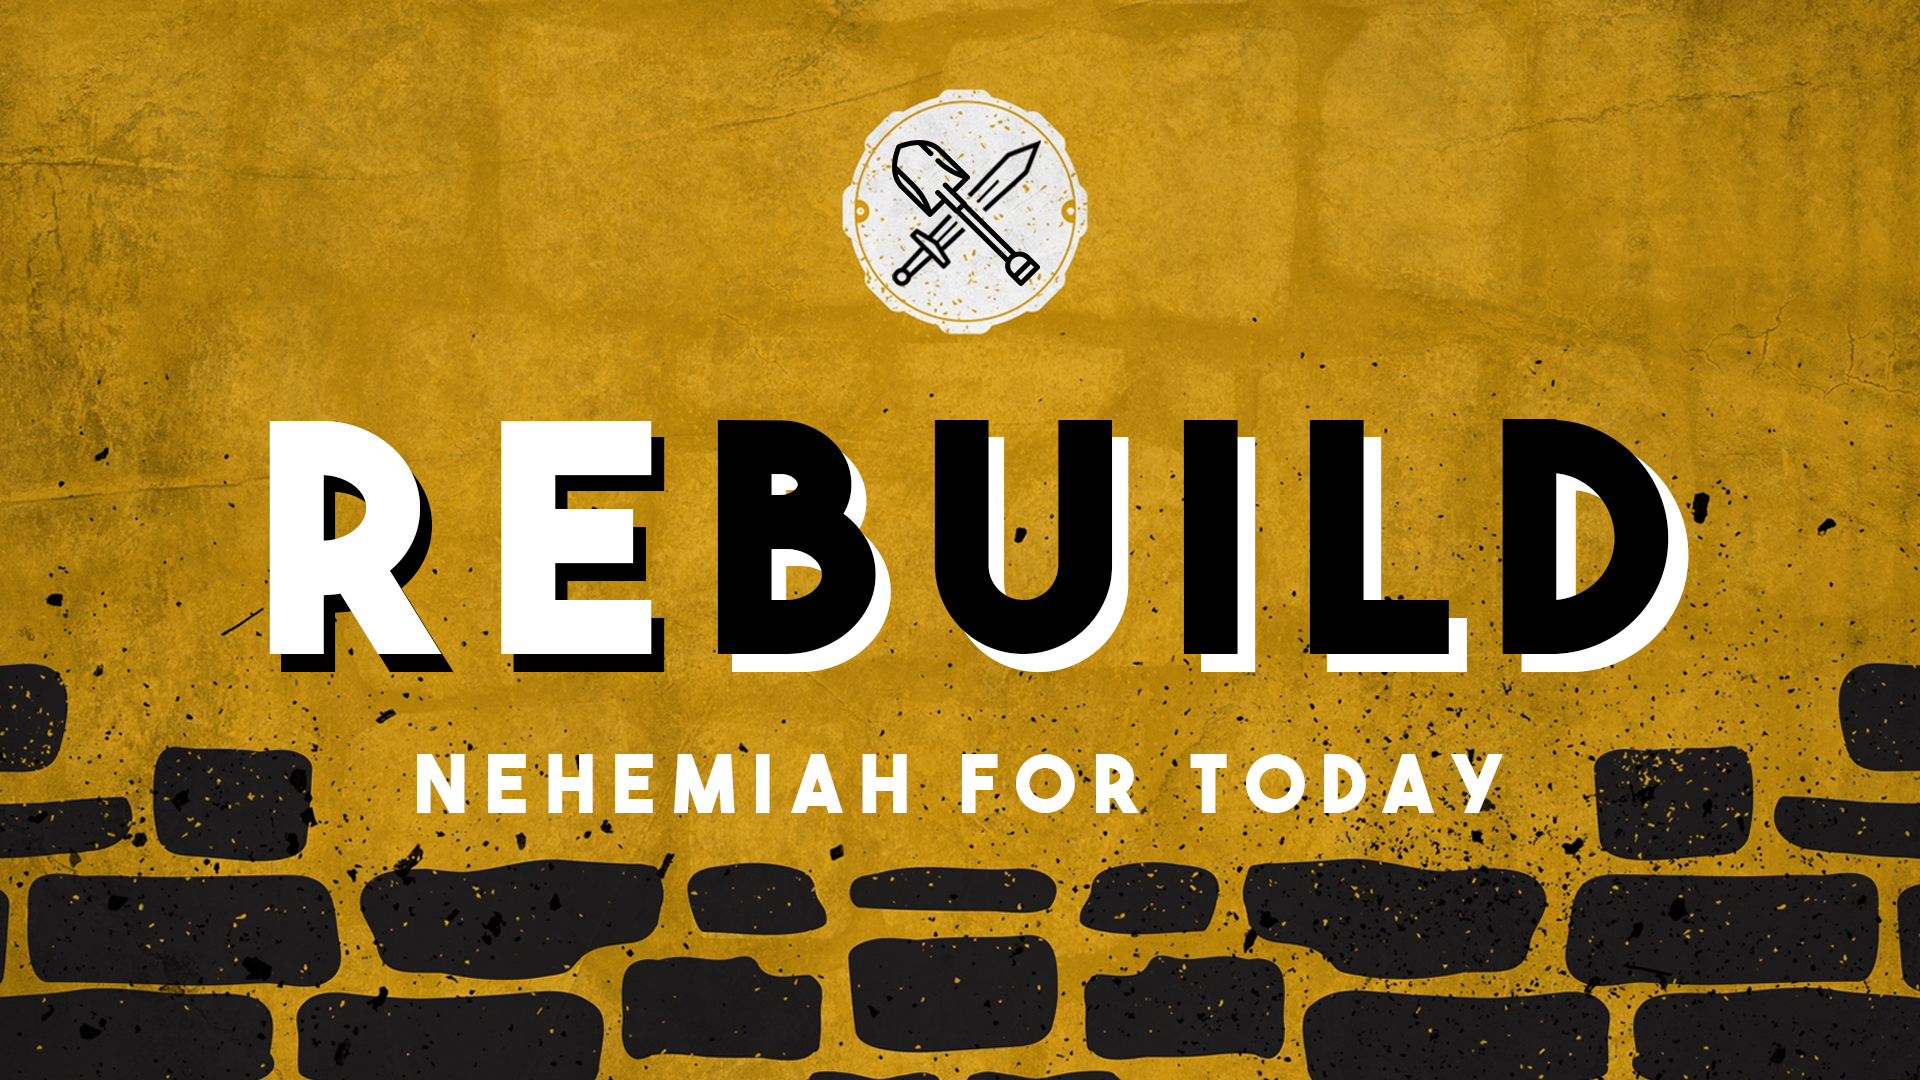 Rebuild - A study of the Old Testament historical book of Nehemiah.